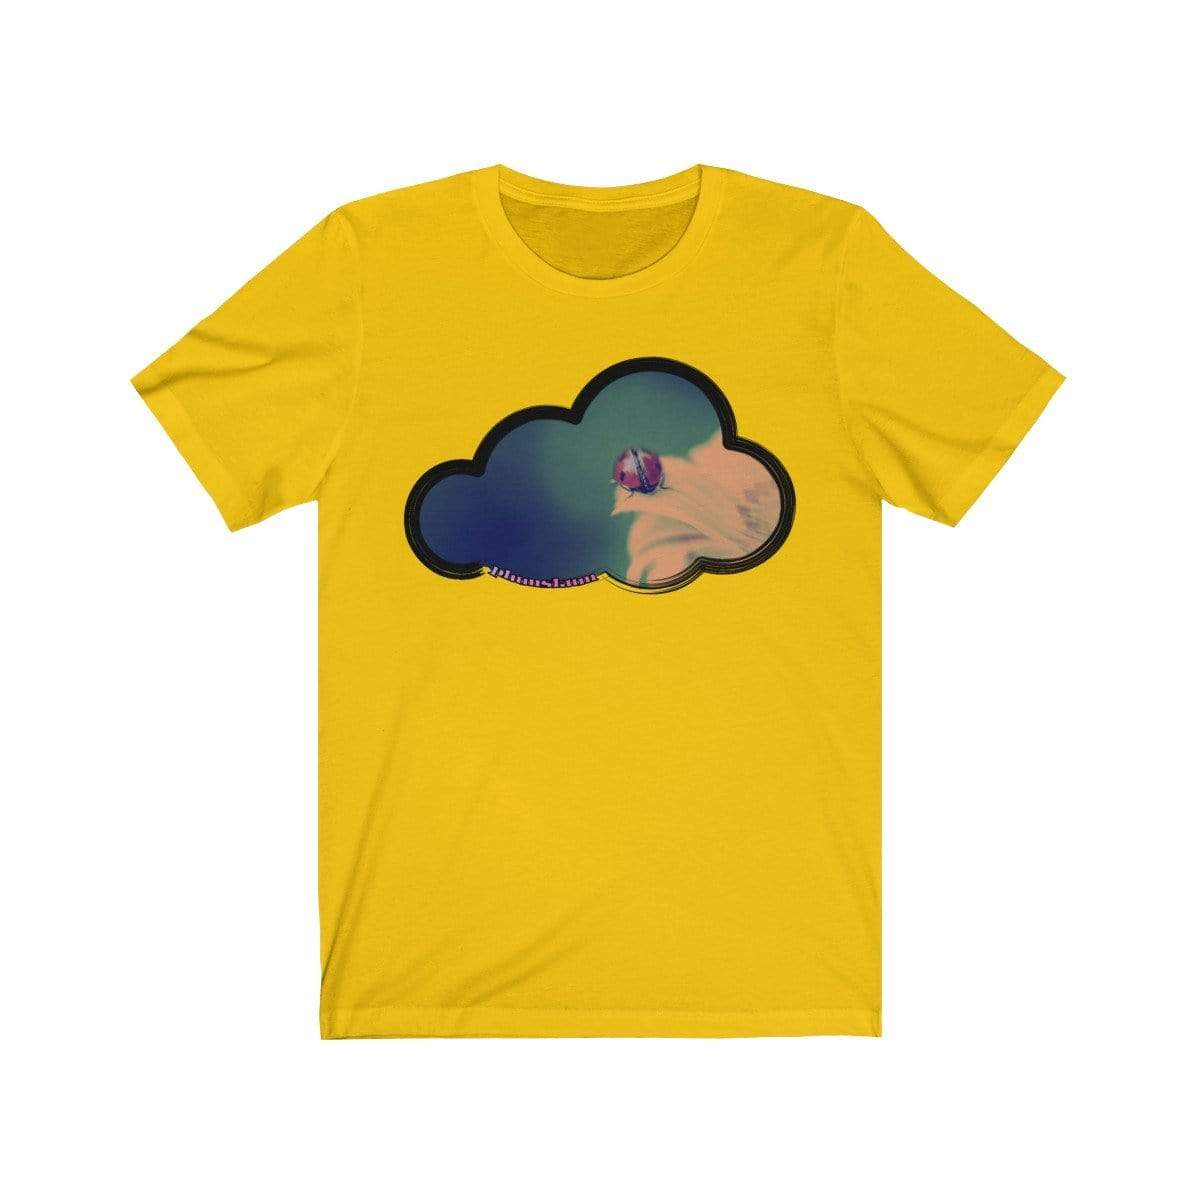 Printify T-Shirt Maize Yellow / M Ladybug Art Clouds Tee